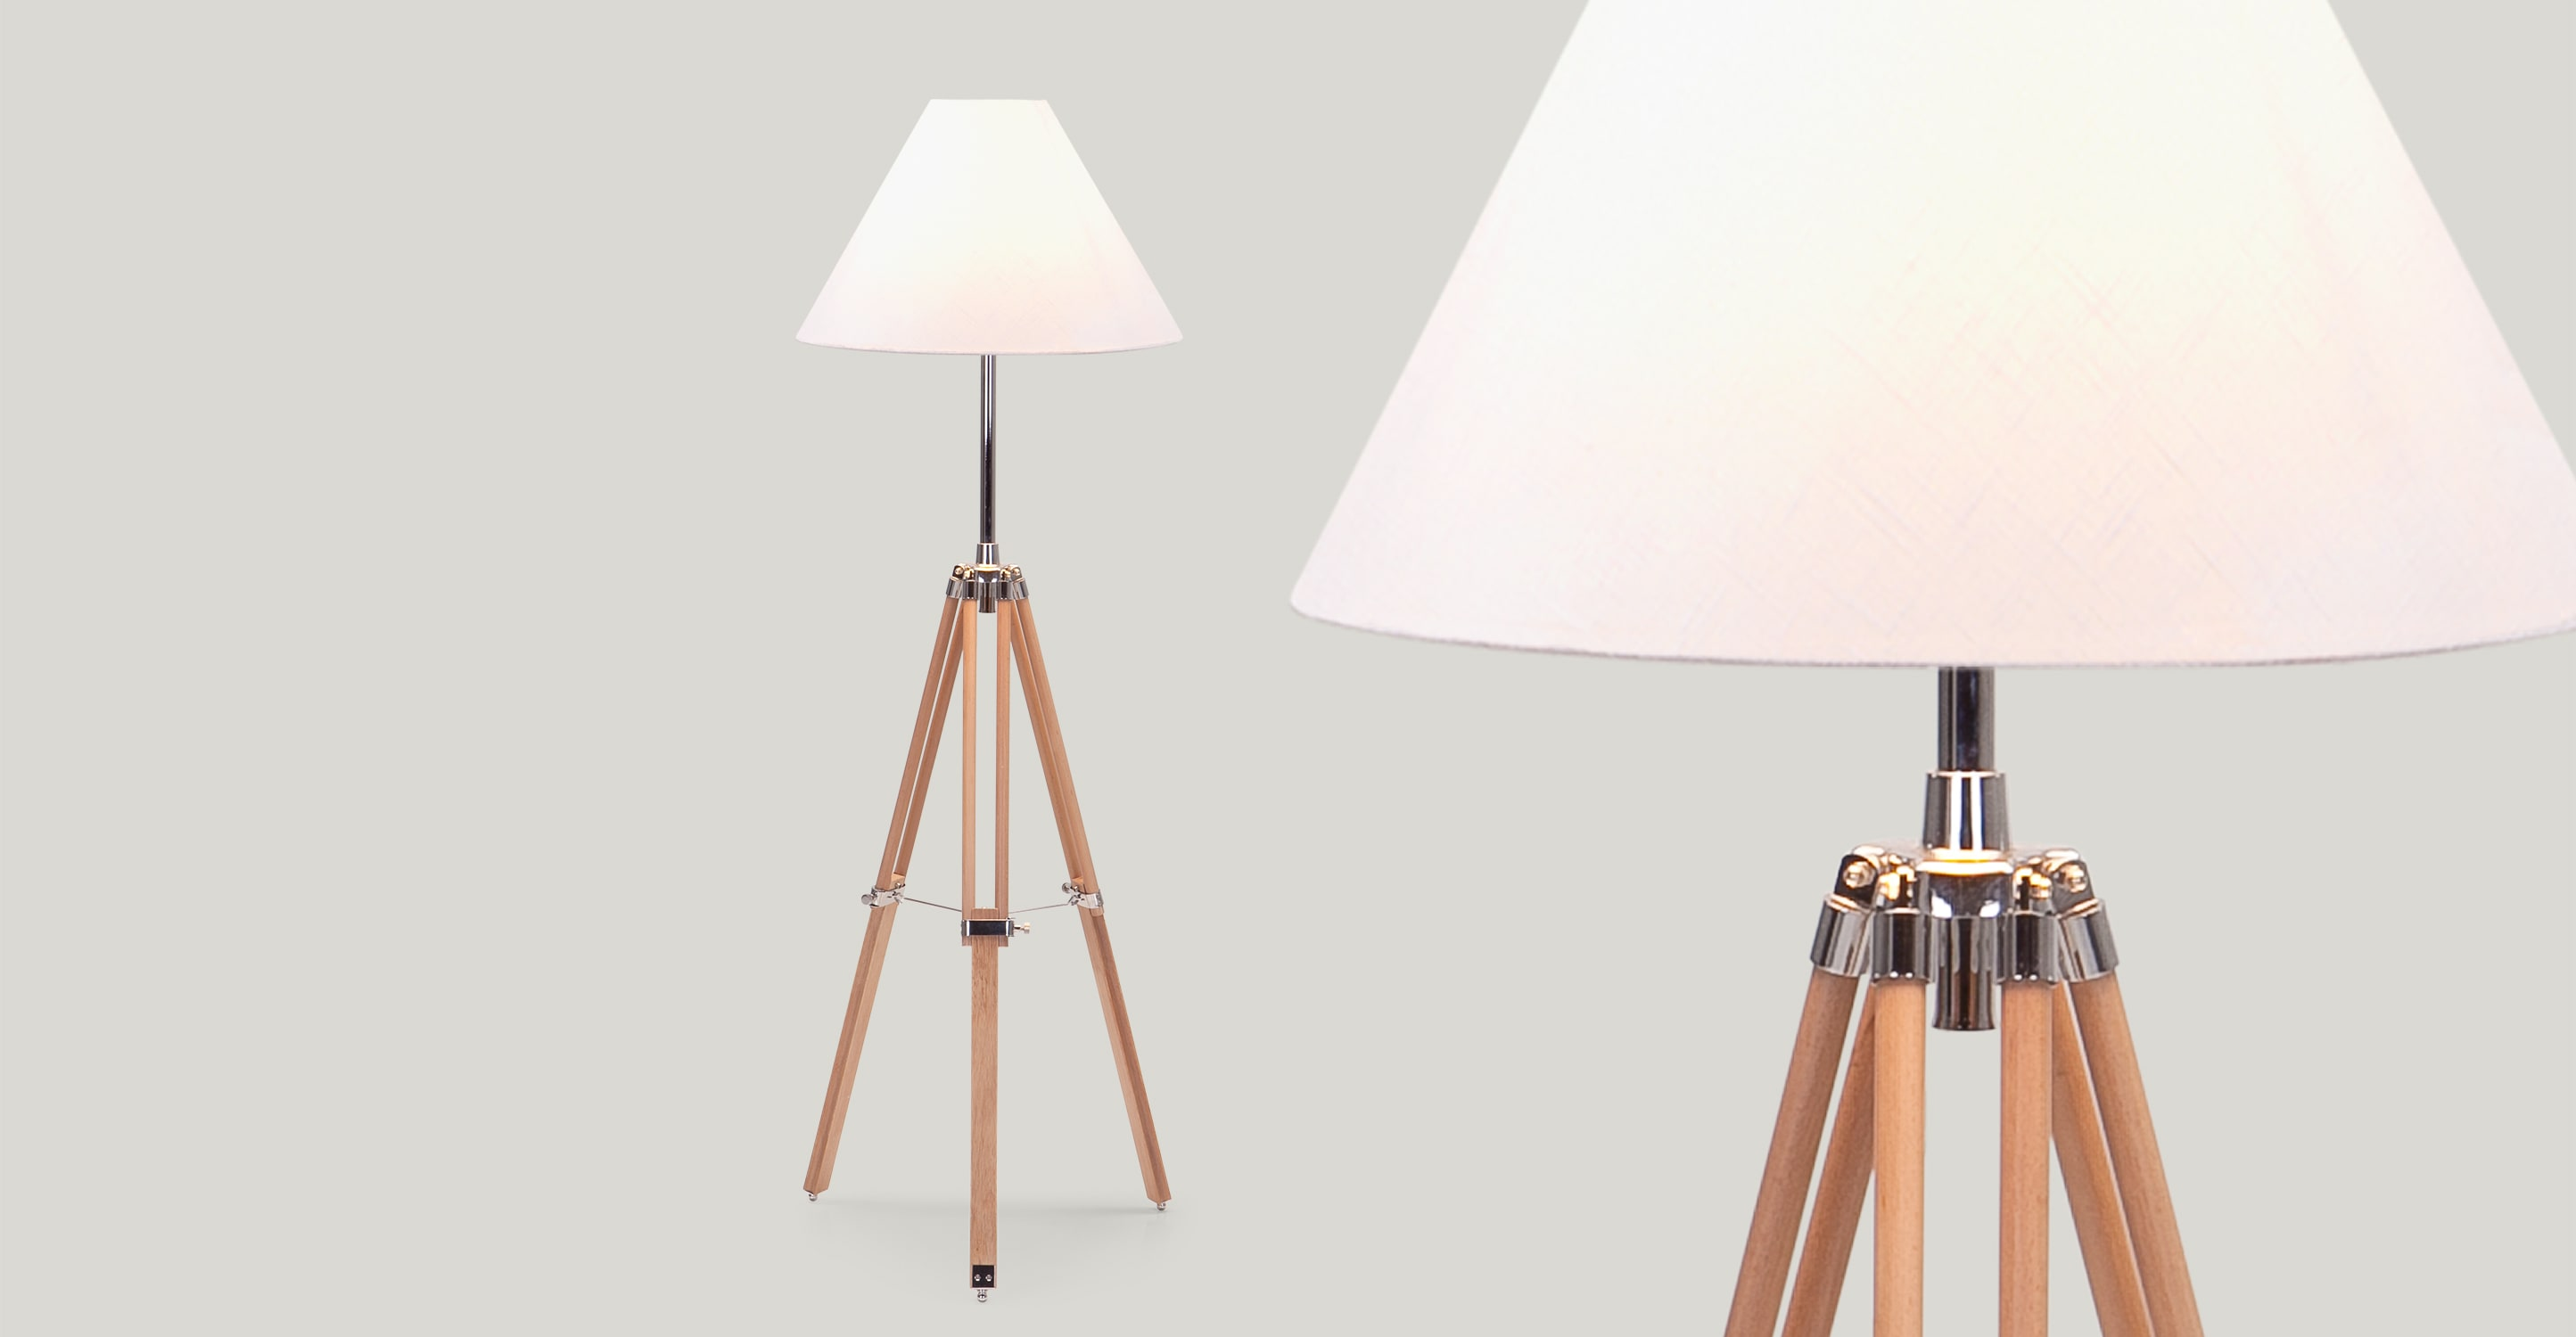 Awesome Tripod Lamp for Interior Lighting Ideas: Crate Flooring | Tripod Studio Floor Lamp | Tripod Lamp